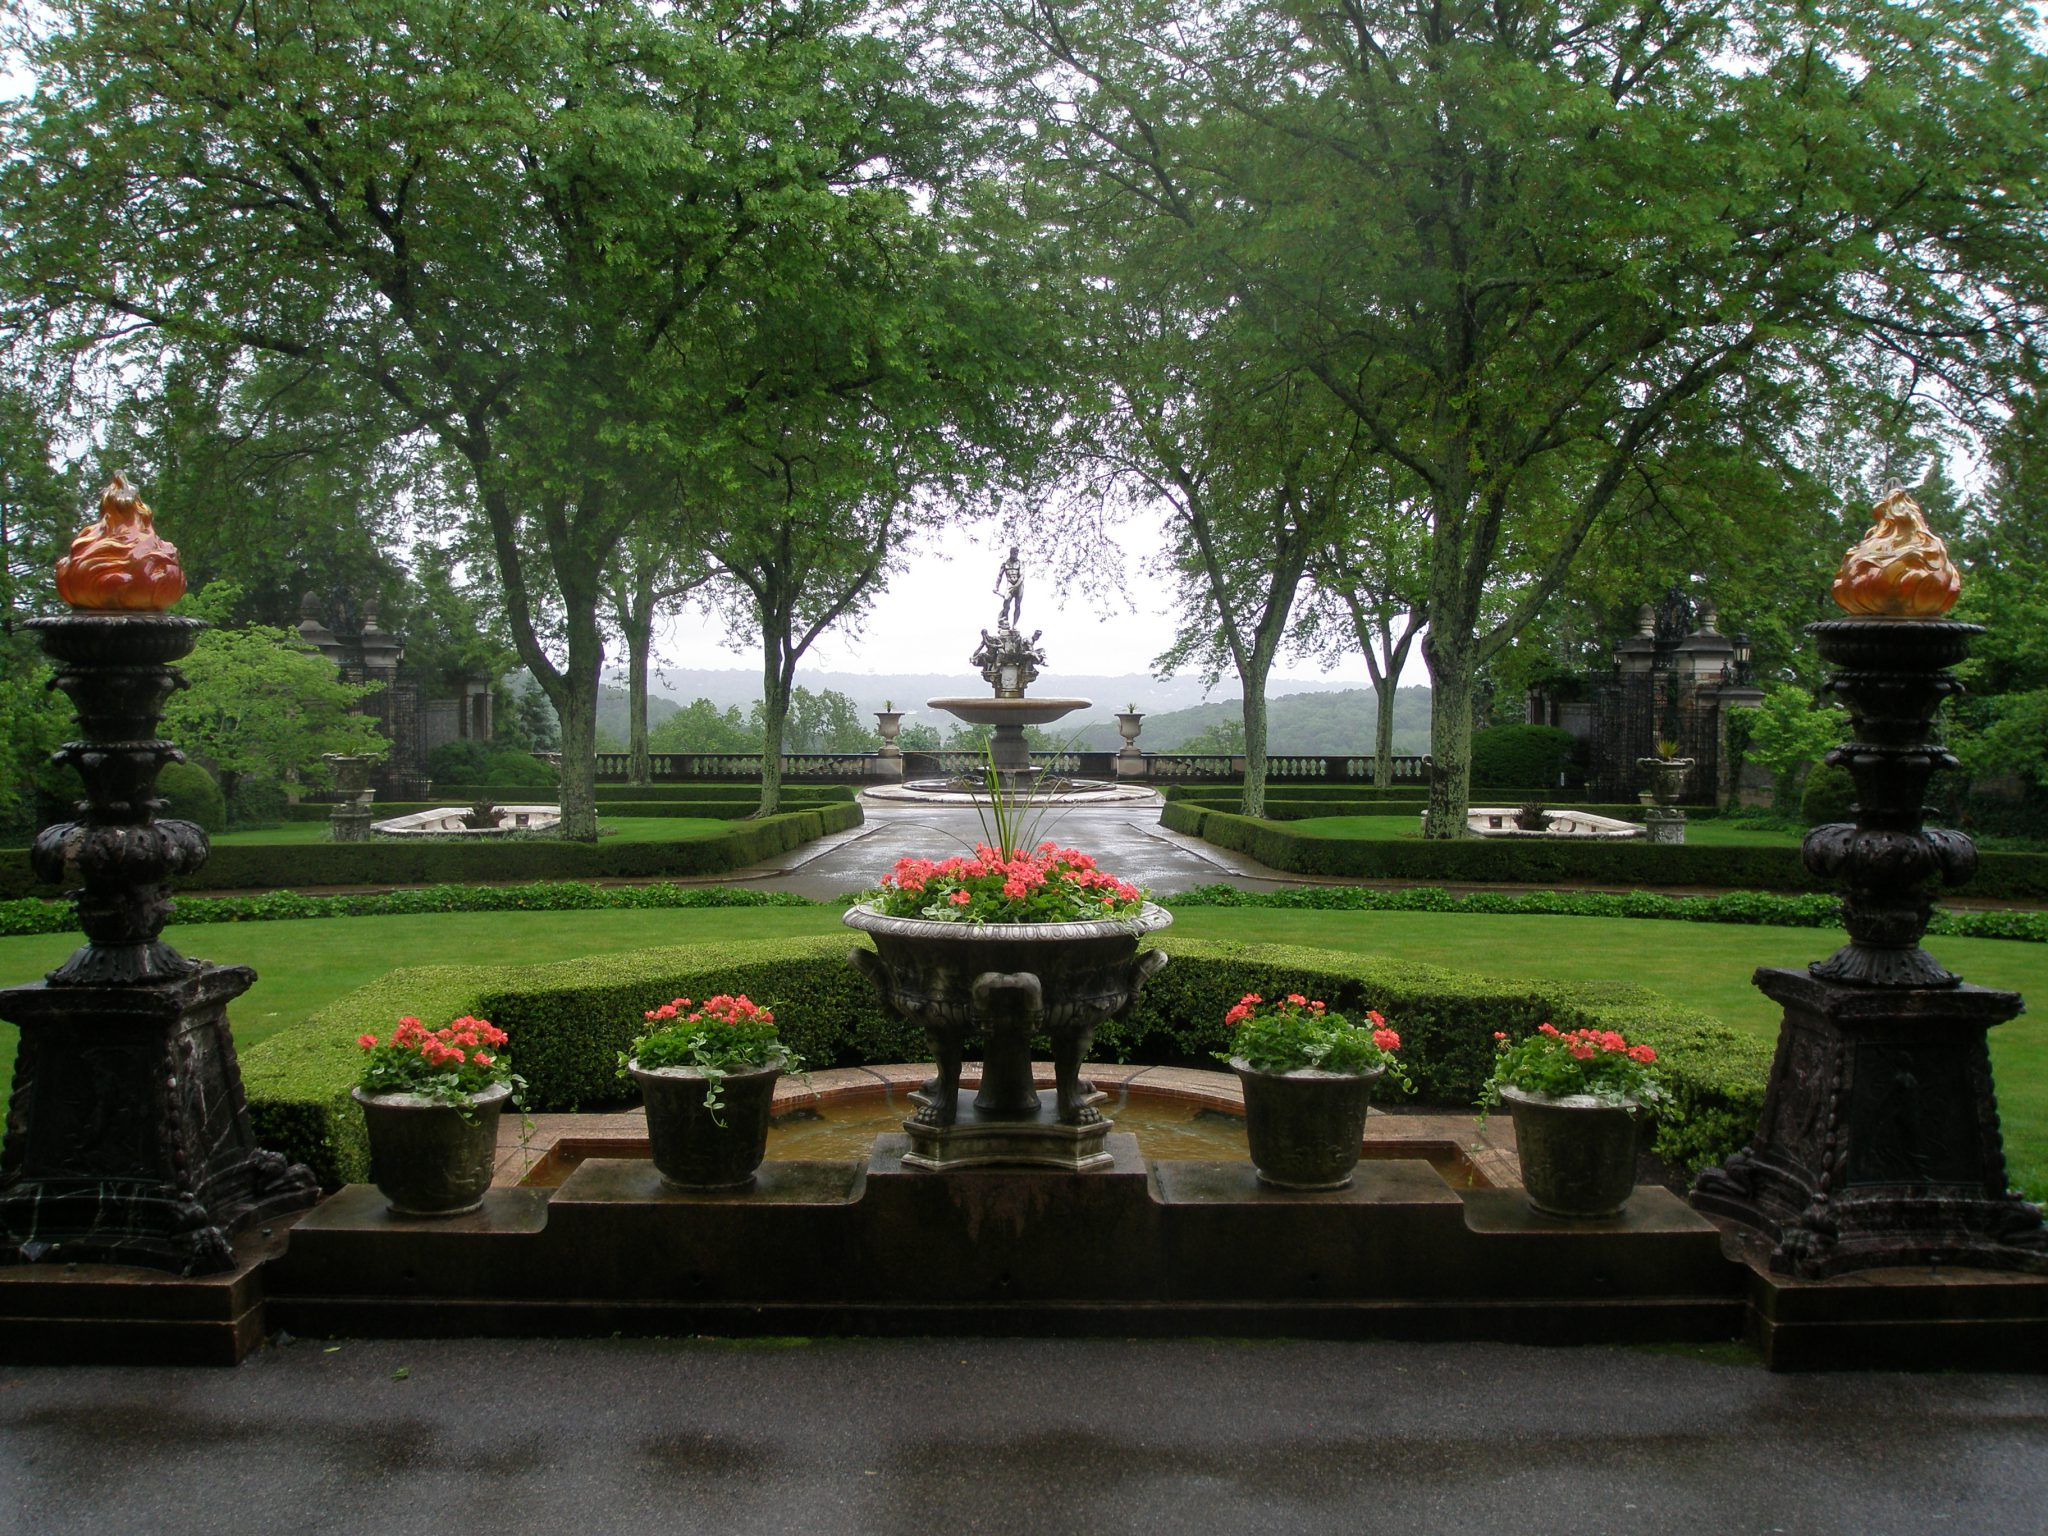 Kykuit: The Rockefeller family home. Entrance Forecourt, with the Oceanus Fountain, on a rainy morning in June.